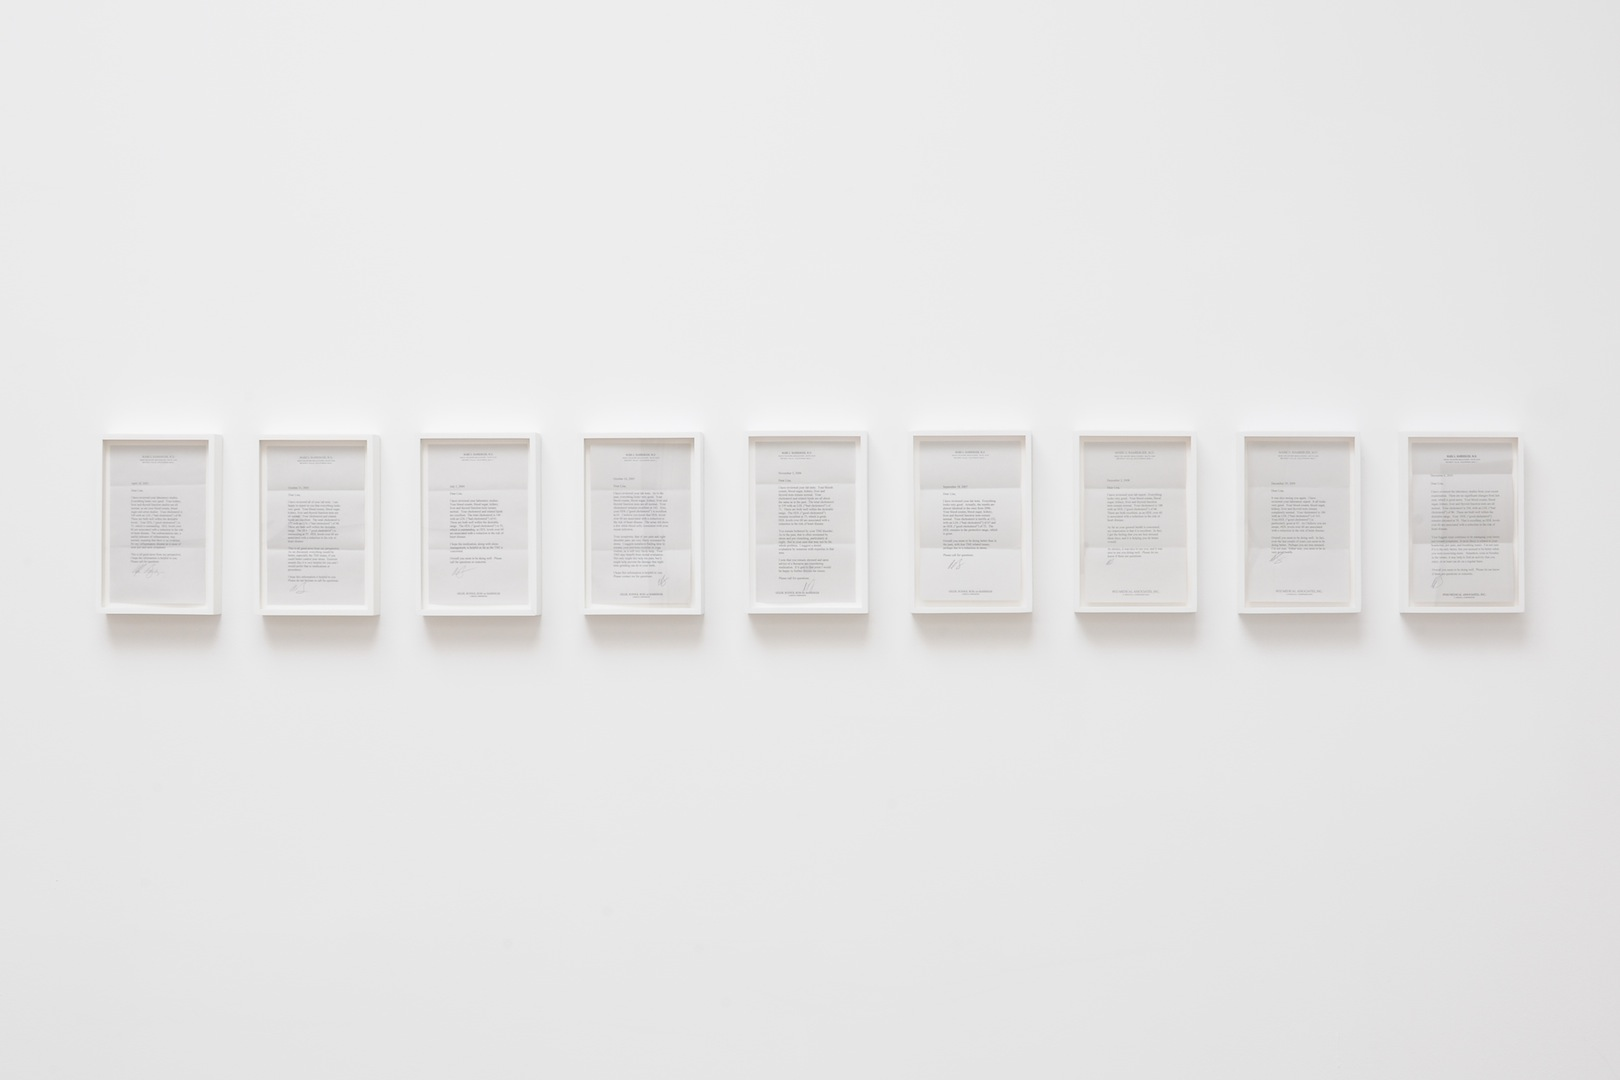 """Letters From Dr. Bamberger, 2001-2012, annual post-physical letters, variable installation, 9 - 5/8"""" x 6 - 5/8 inches each (9 total), unique"""